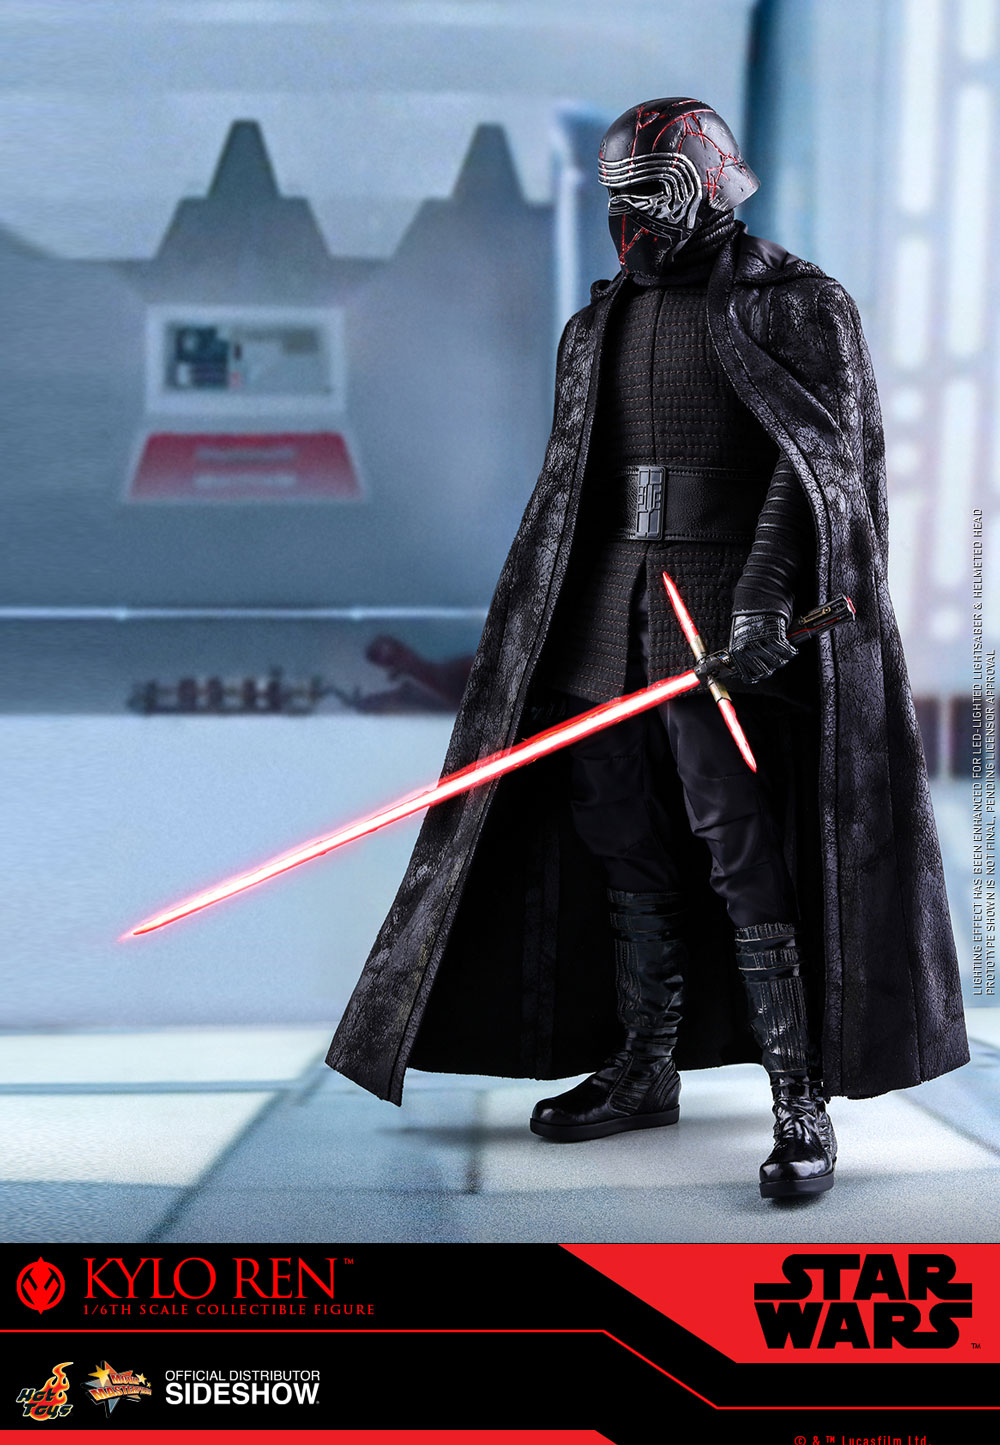 Kylo Ren Sixth Scale Figure By Hot Toys Sideshow Collectibles Hot Toys Star Wars Kylo Ren